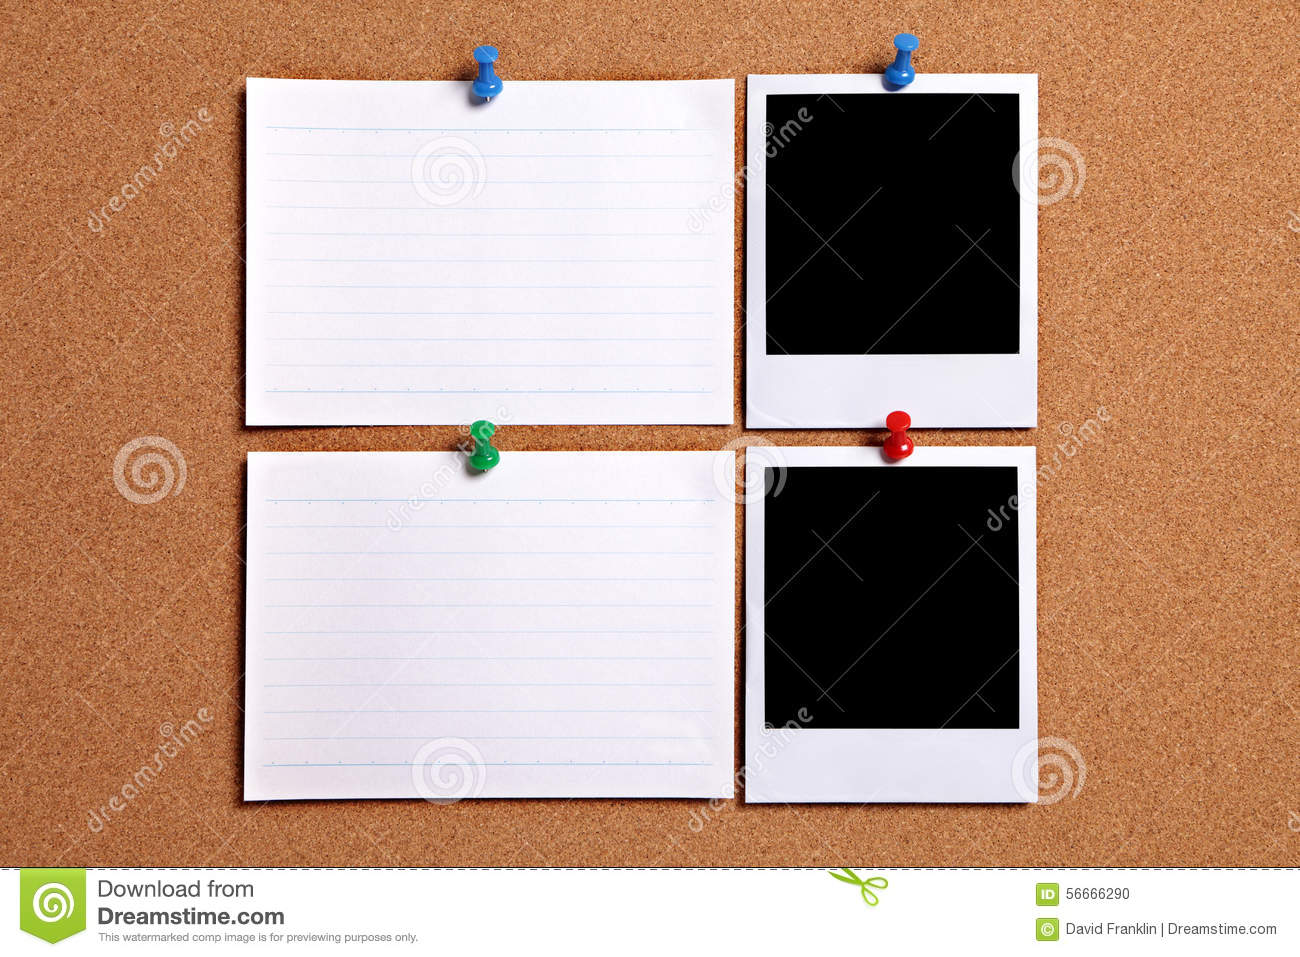 Two polaroid style photo frames with blank white note cards pinned to cork notice board, copy space